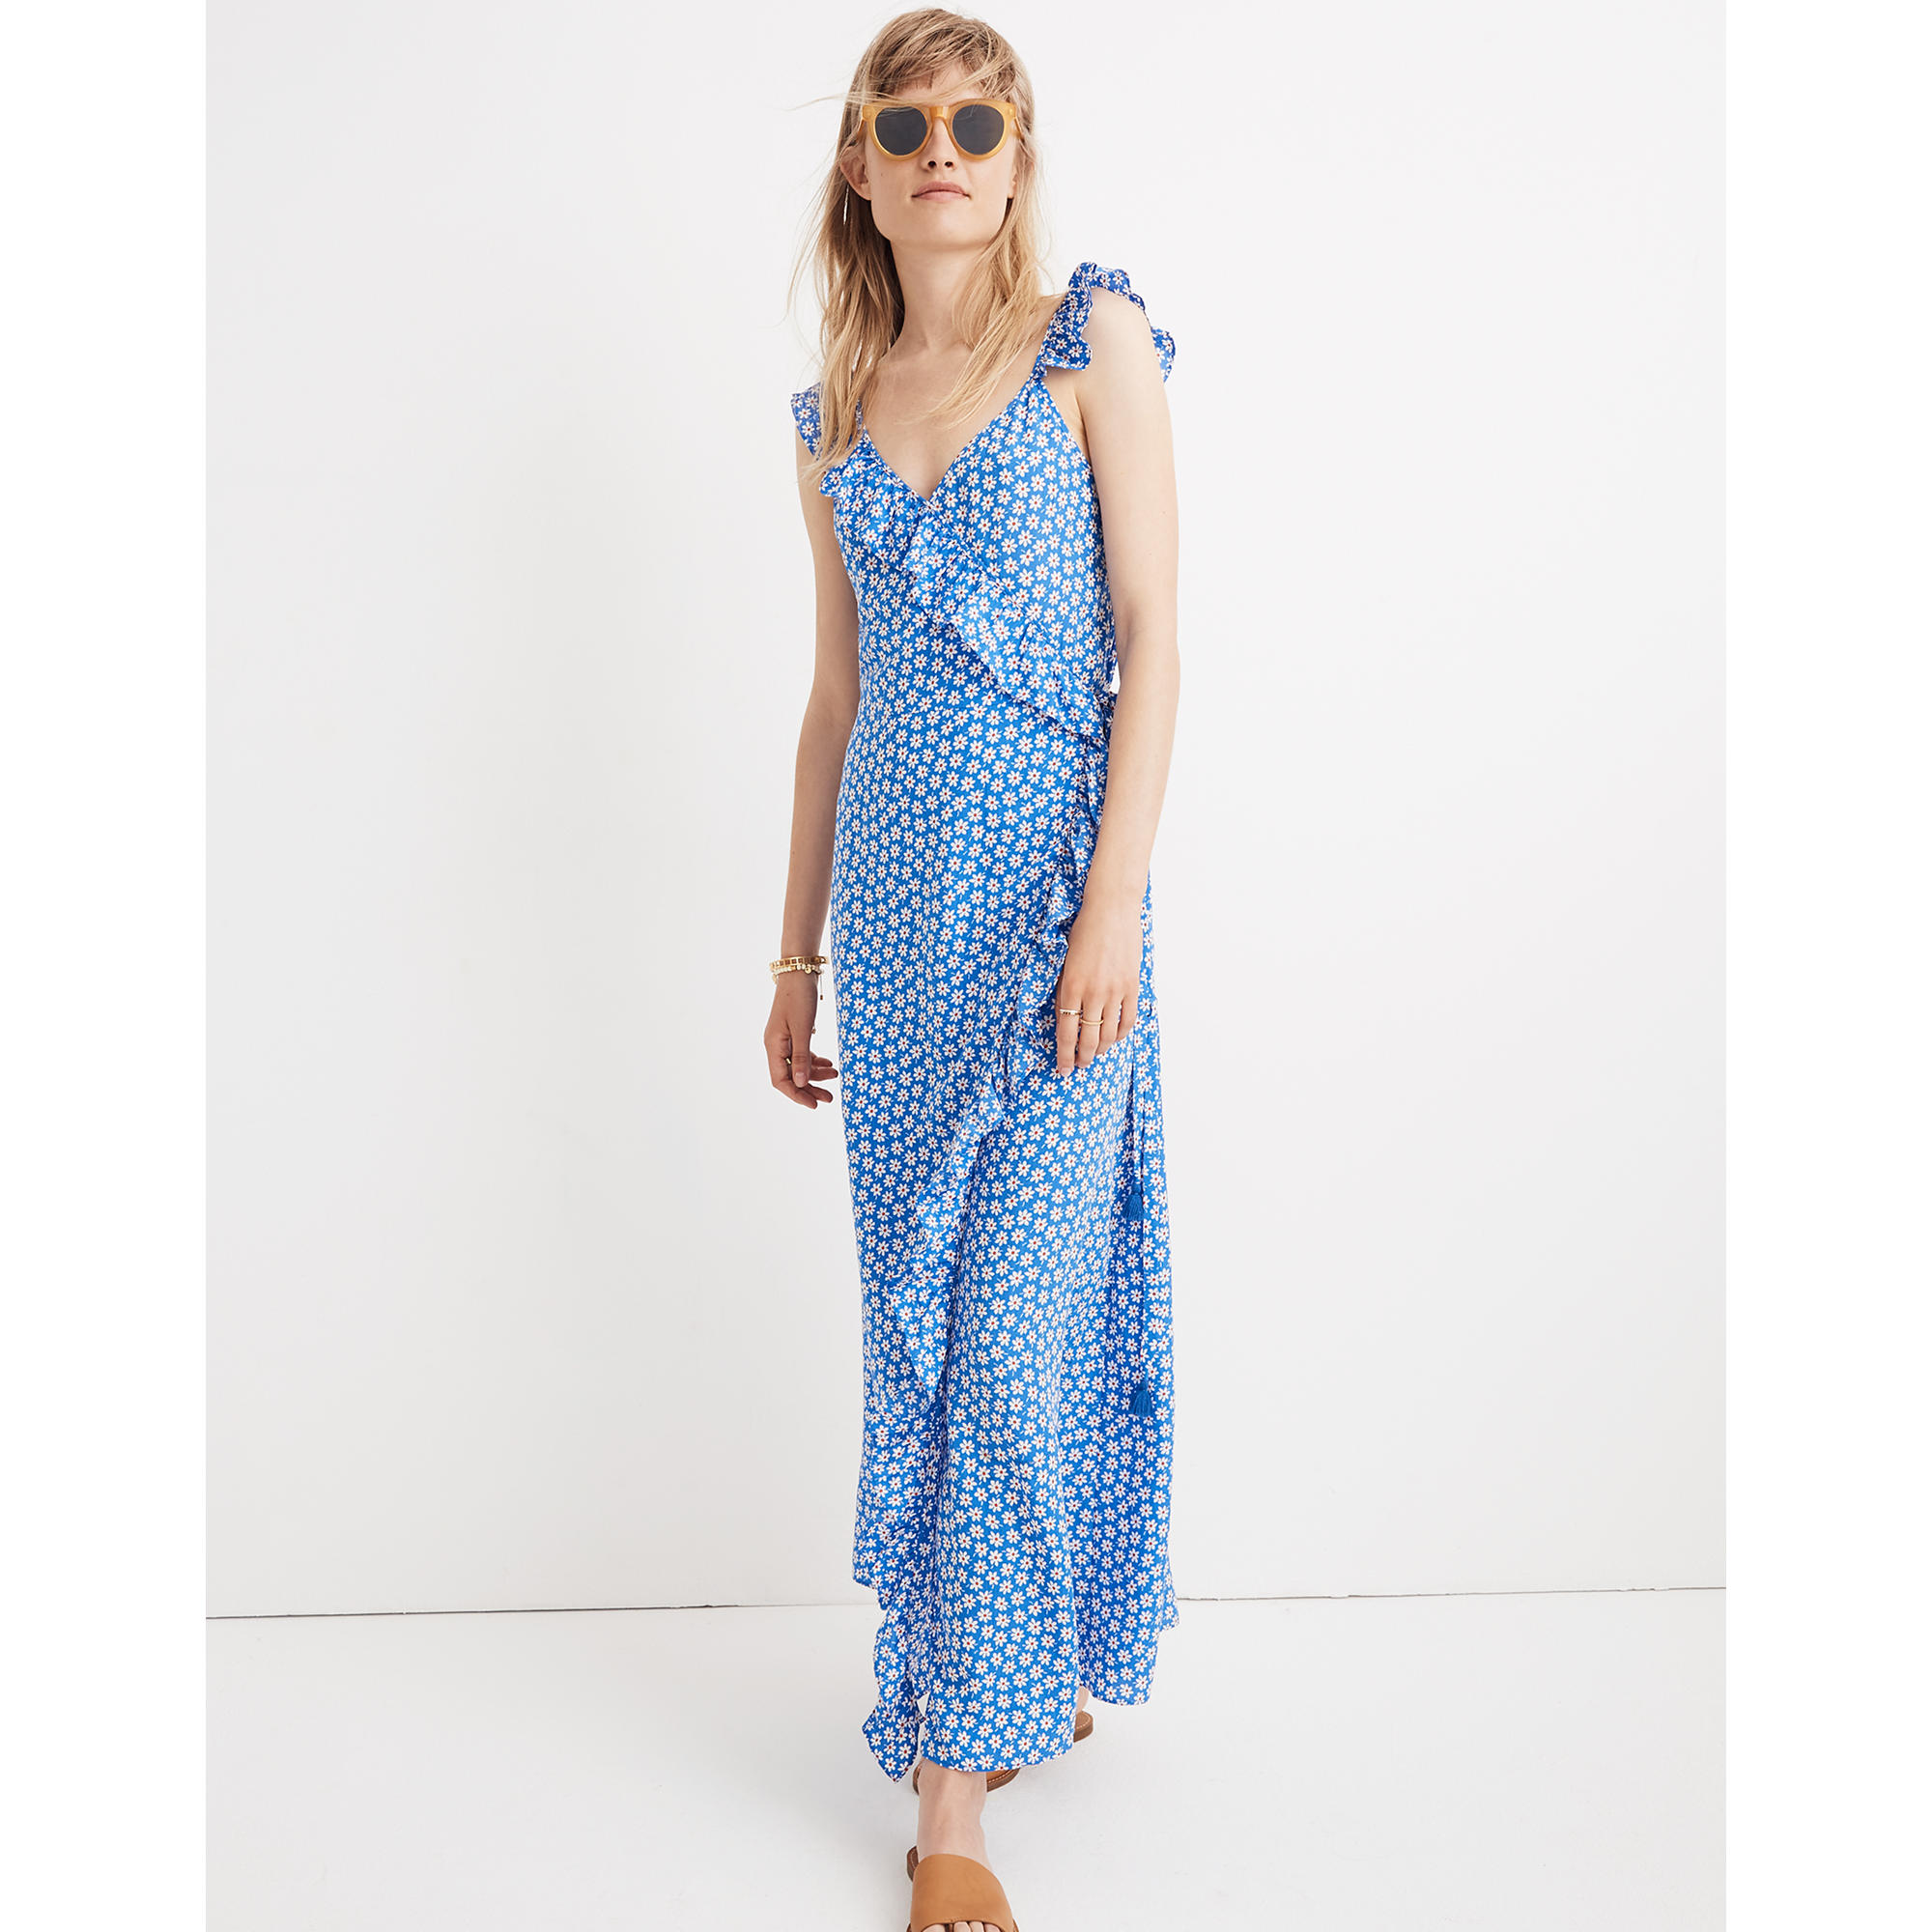 Madewell ruffled wrap maxi dress in mini daisy